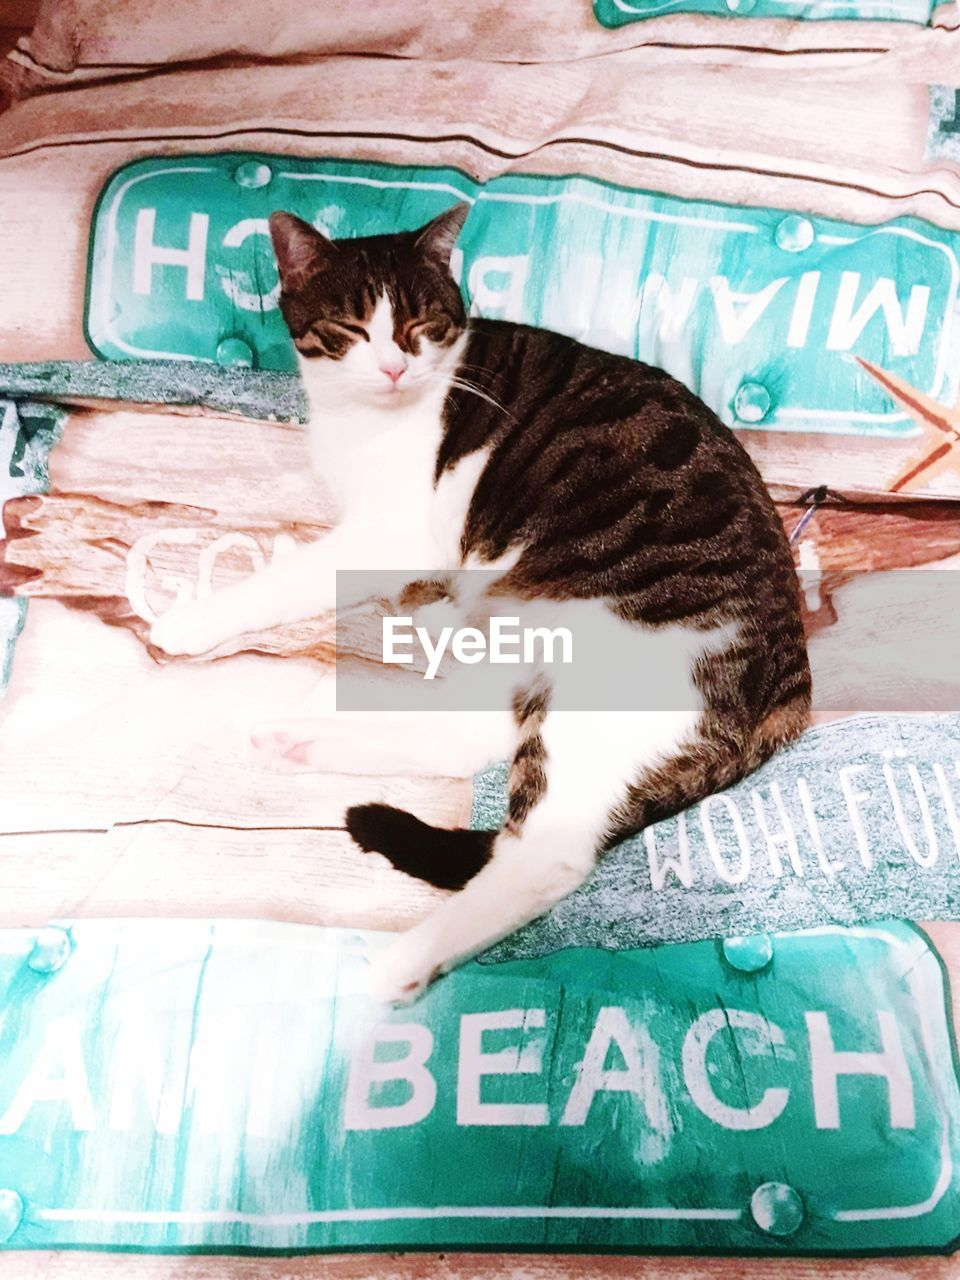 cat, feline, domestic cat, mammal, pets, domestic animals, domestic, one animal, vertebrate, sleeping, people, relaxation, real people, text, lying down, resting, day, whisker